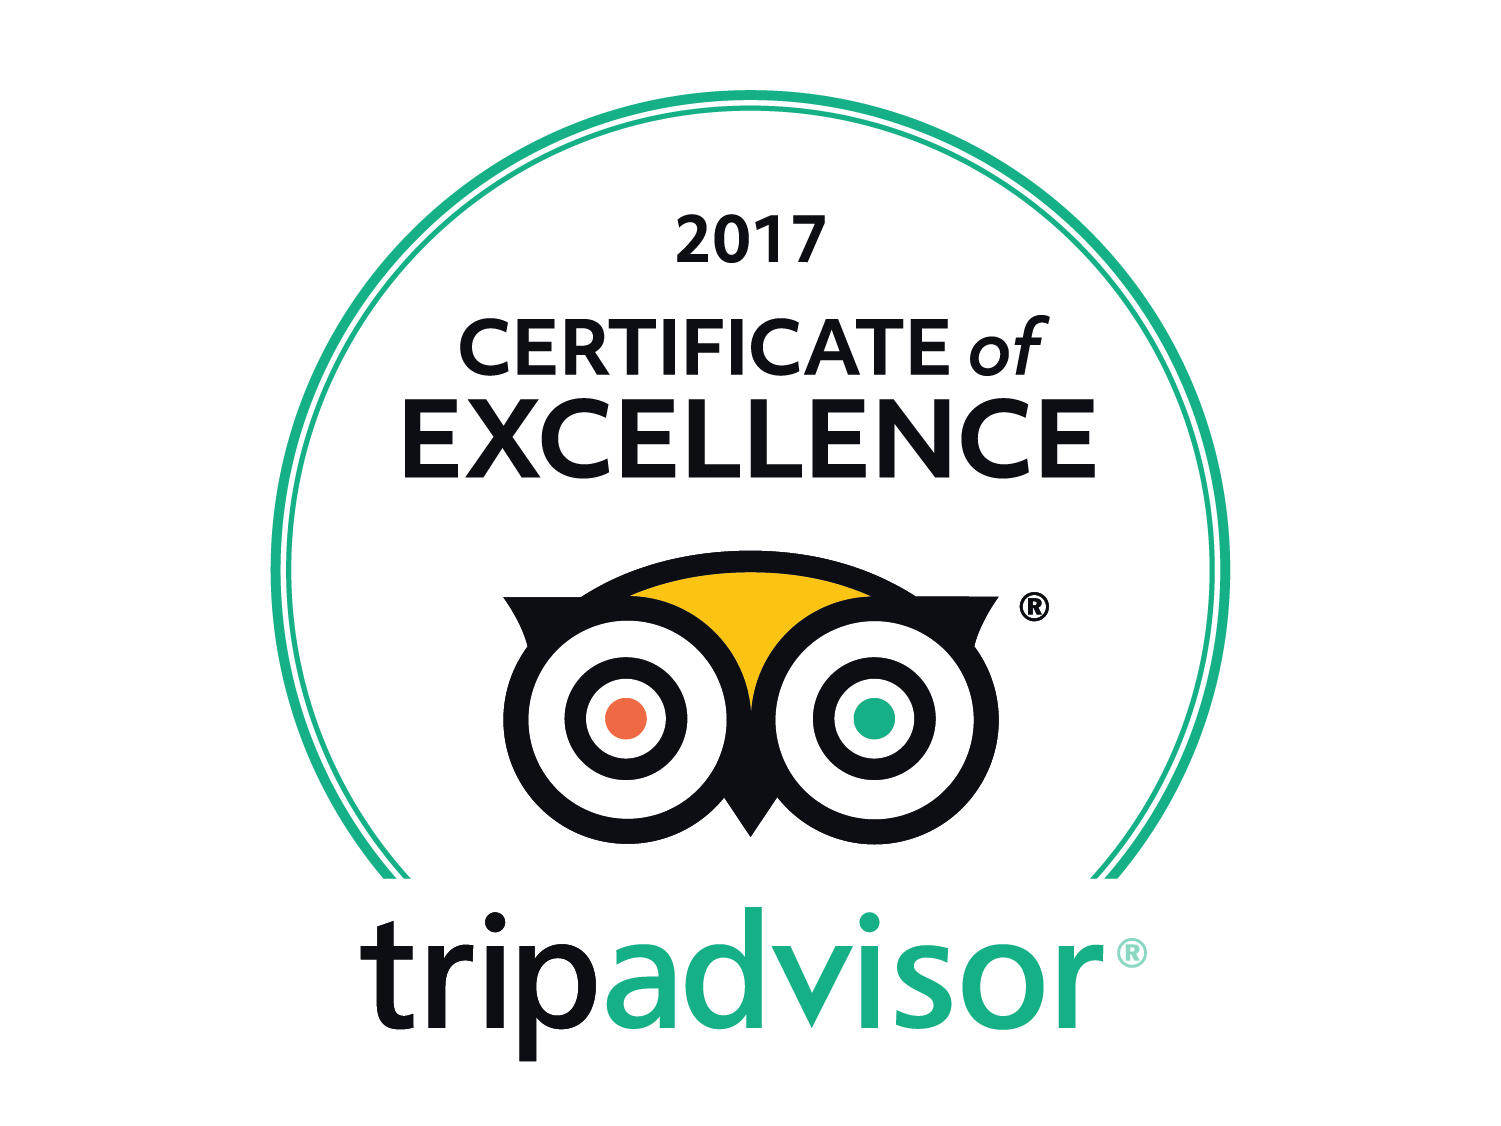 Visit Champagne My Winedays Certificate of excellence Tripadvisor 2017 white